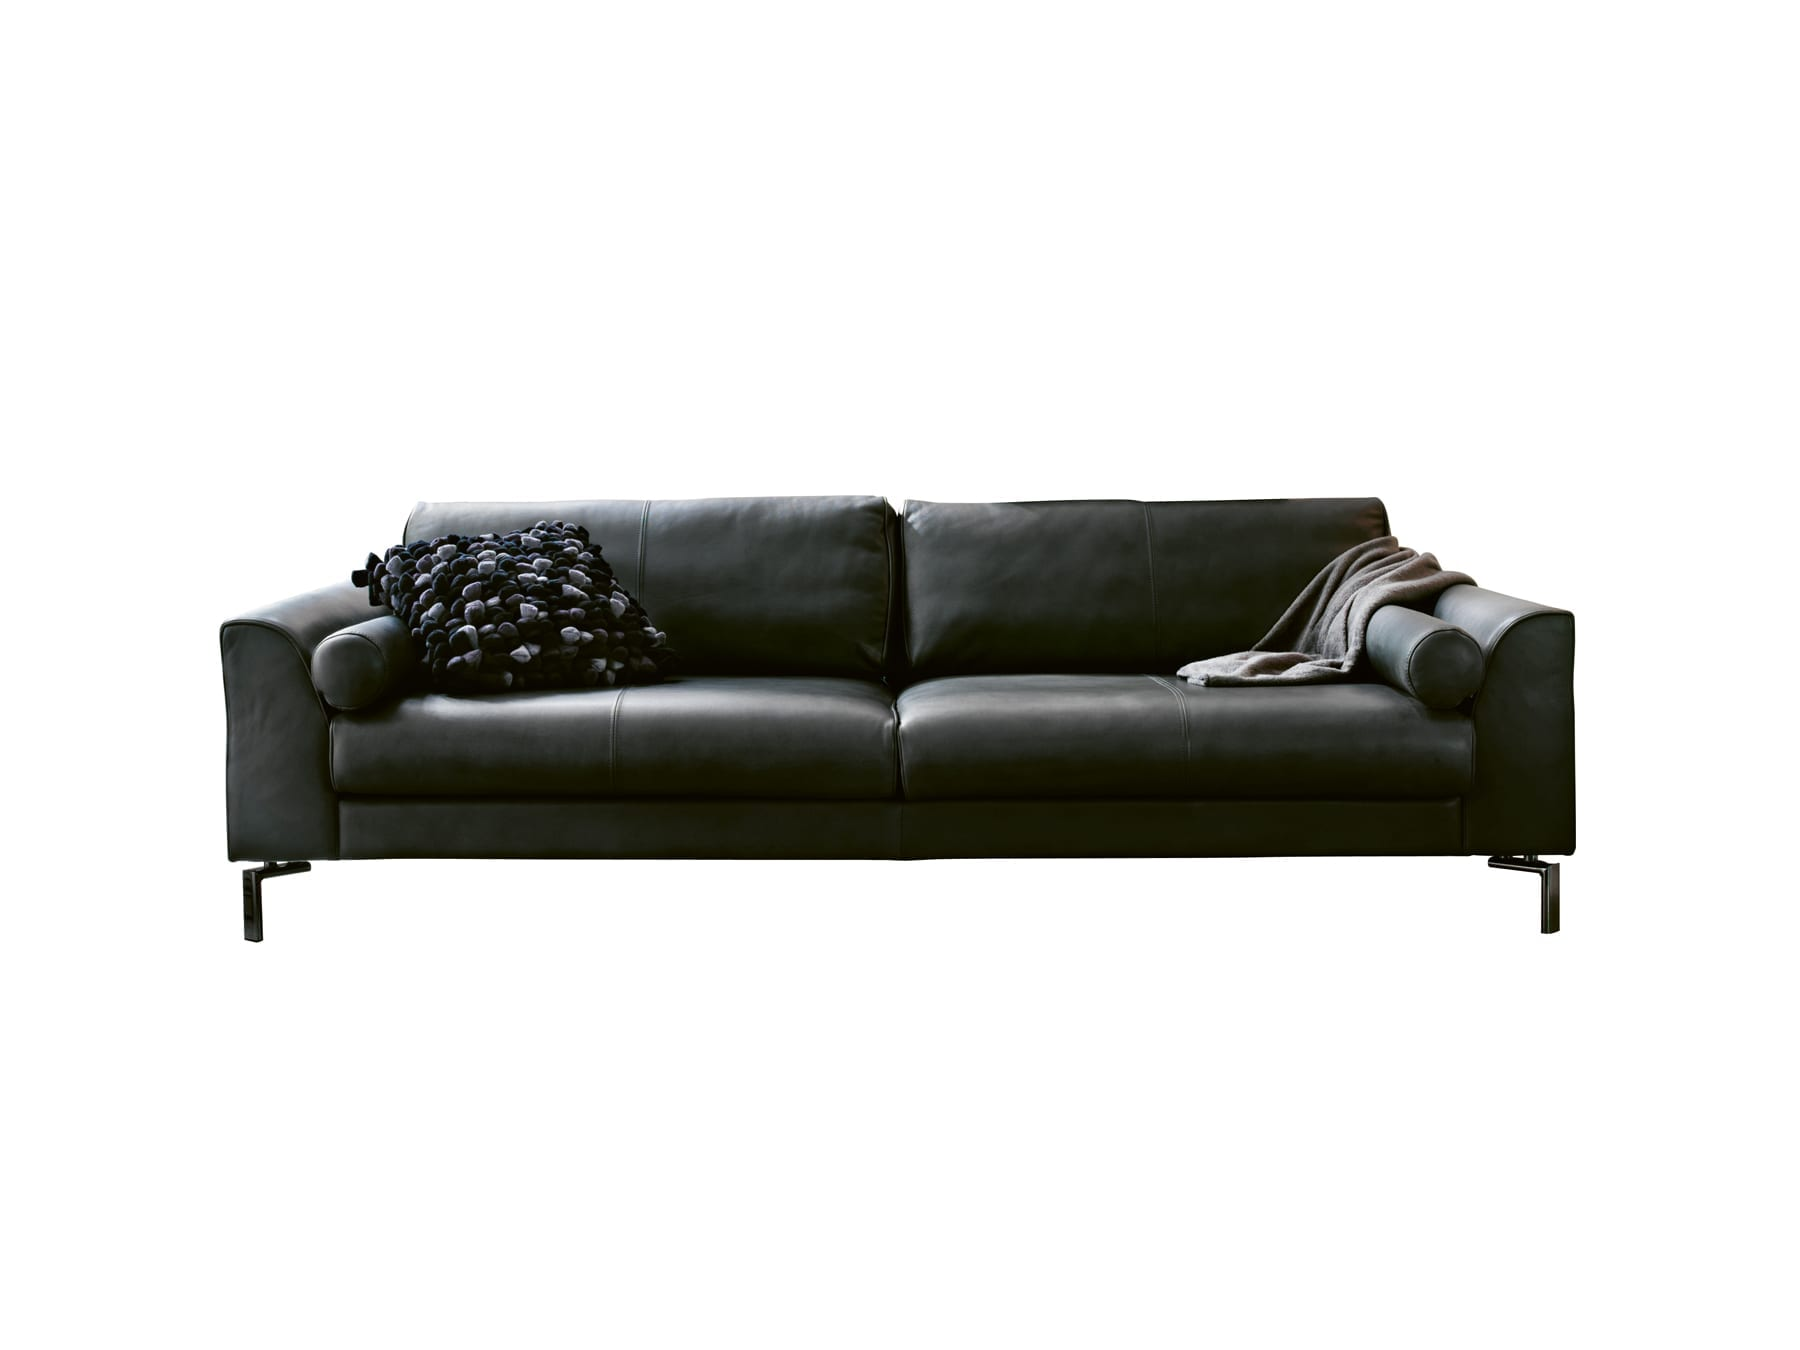 baker leather sofas argos corner sofa black living room wren tufted 6354